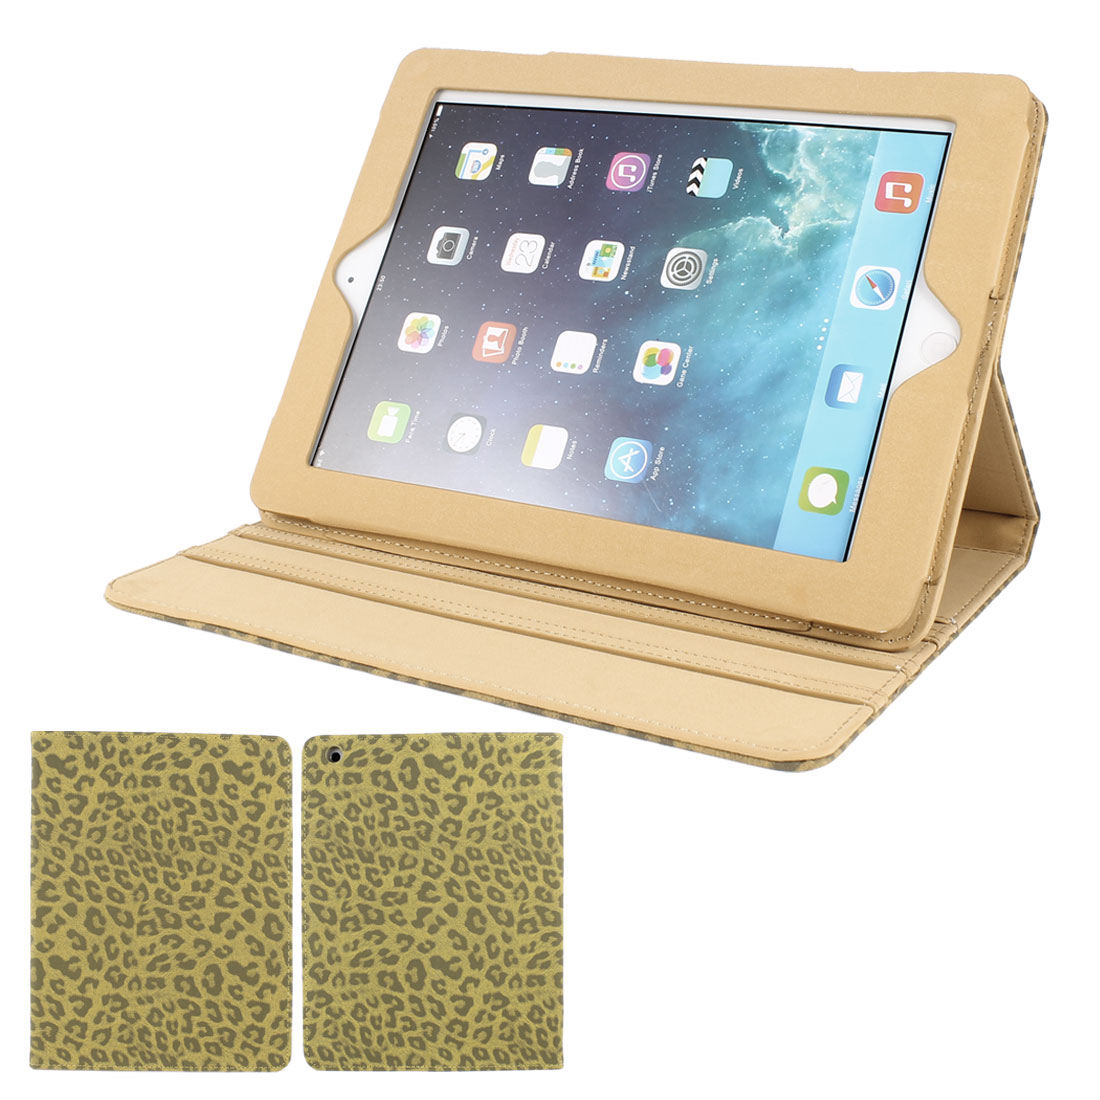 Khaki Textured Leopard Print PU Leather Folio Stand Case Cover Skin for iPad 2 3 4